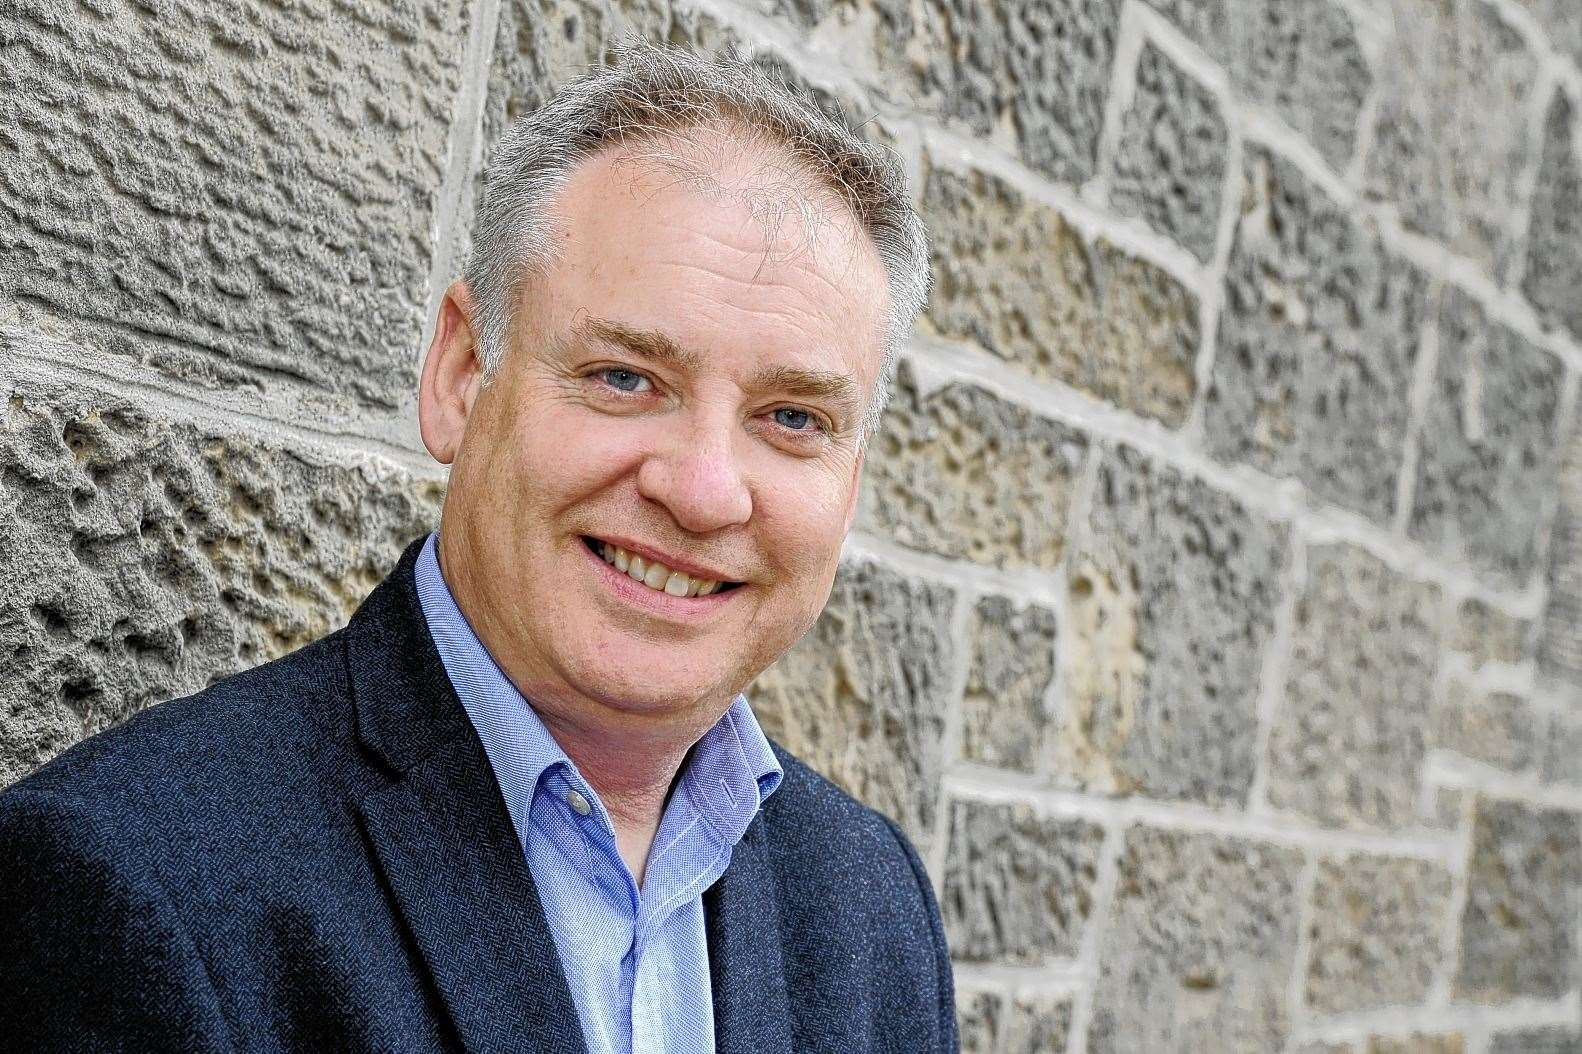 Moray MSP Richard Lochhead has hailed the way communities banded together during the darkest days of lockdown.